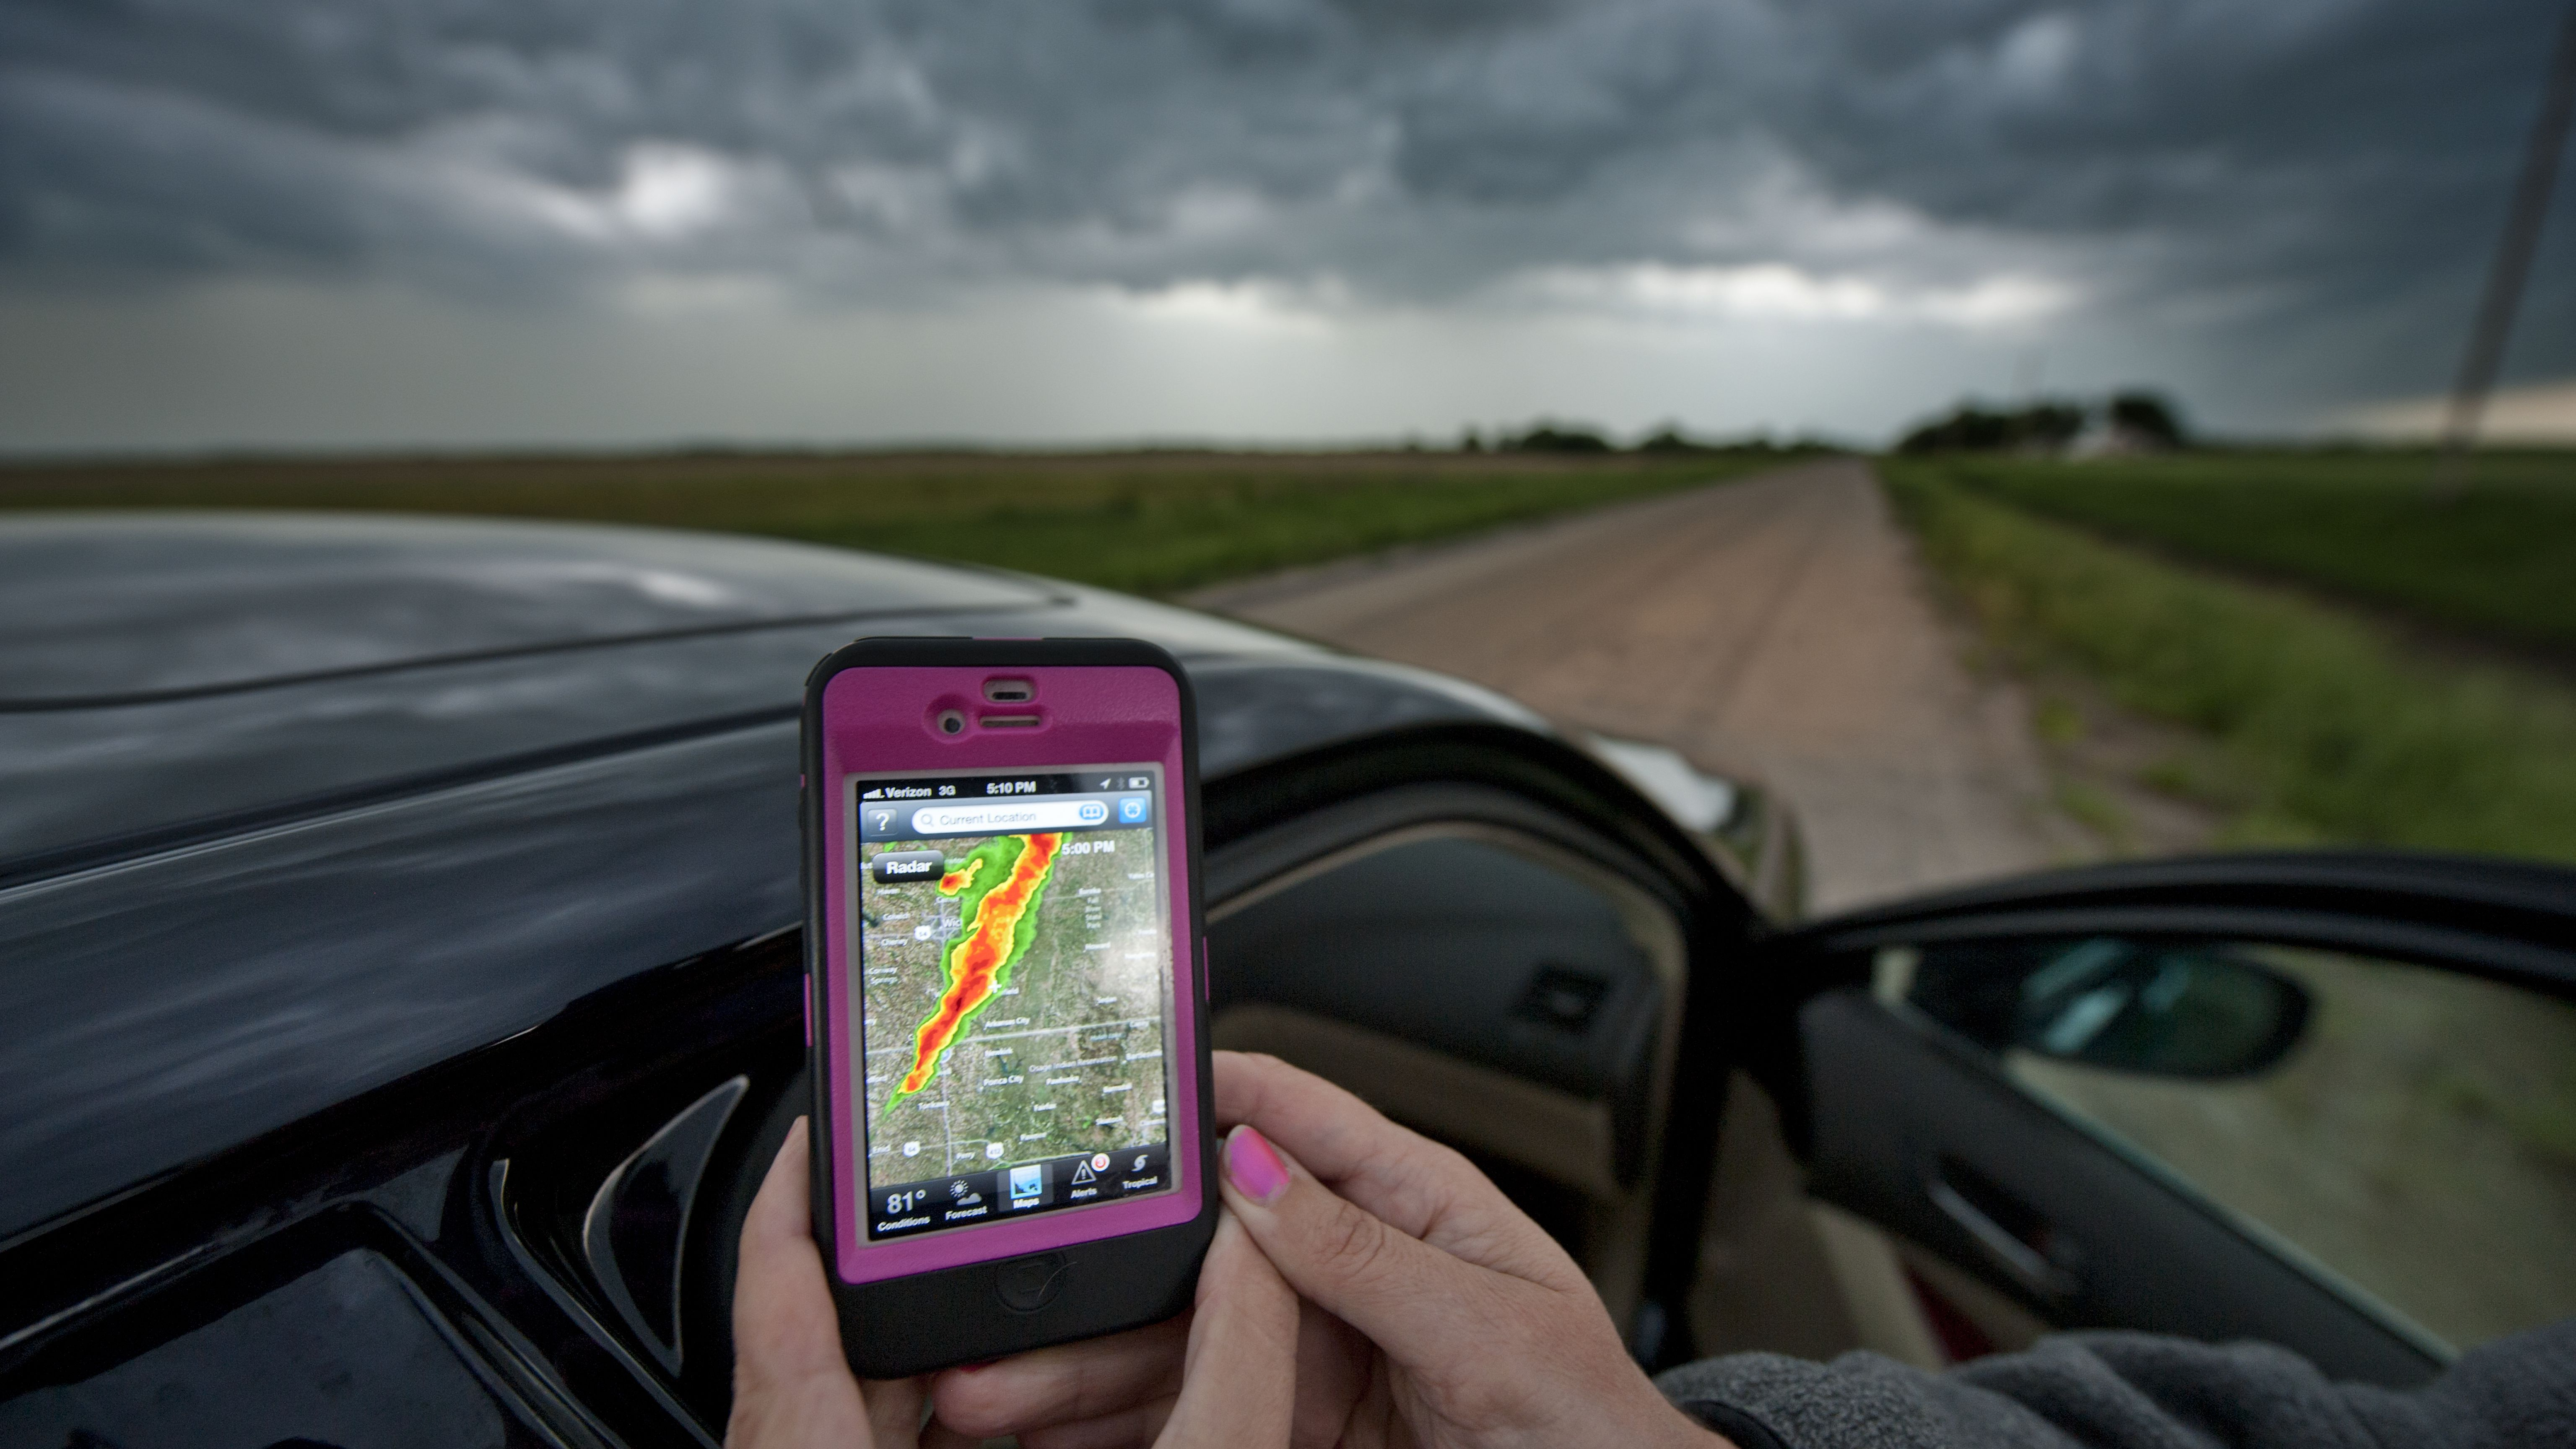 How to Identify Severe Thunderstorms on Radar